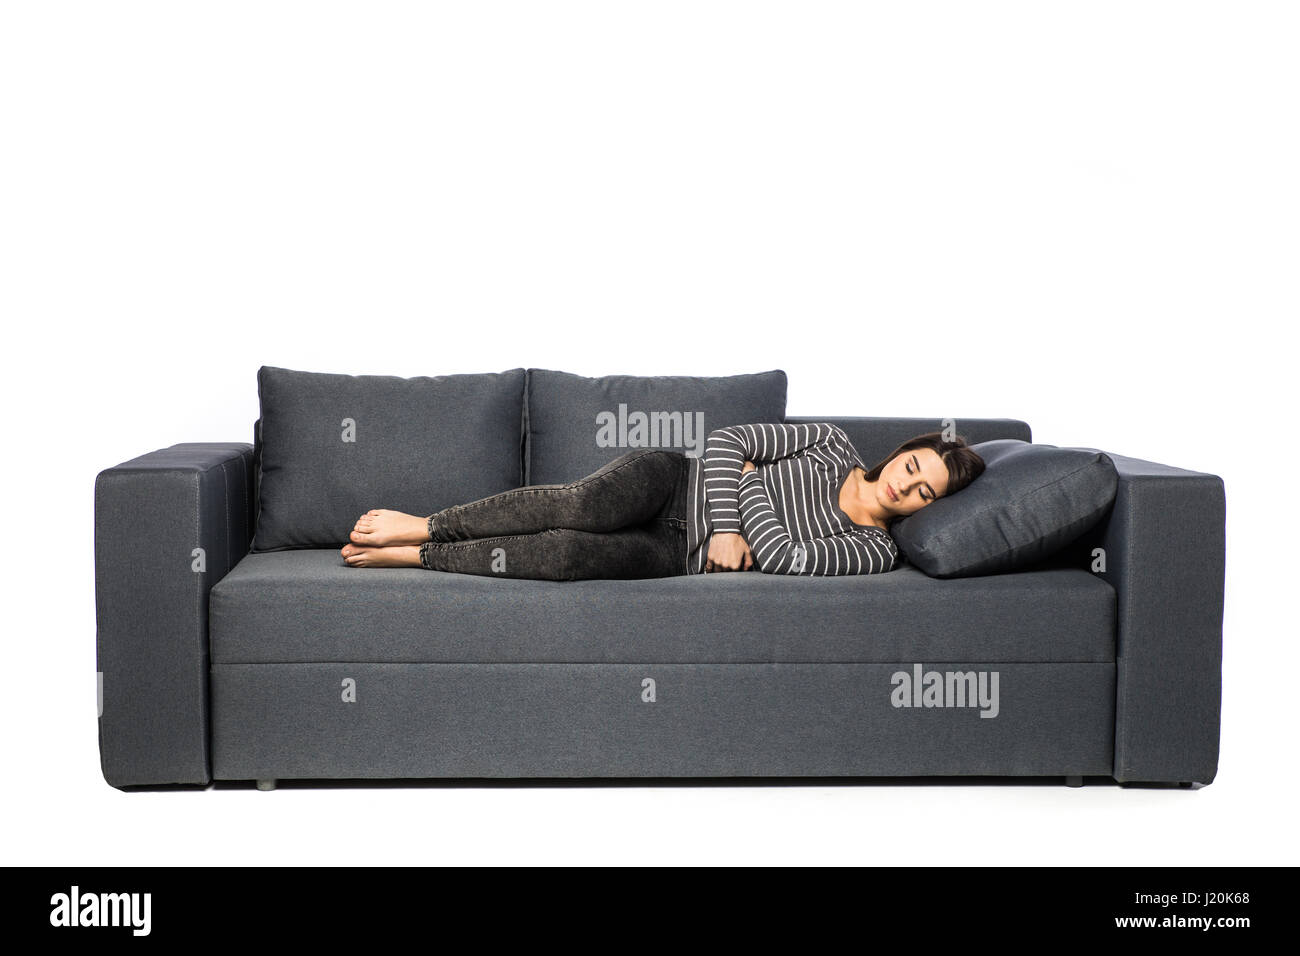 Woman lying on sofa looking sick in the living room - Stock Image